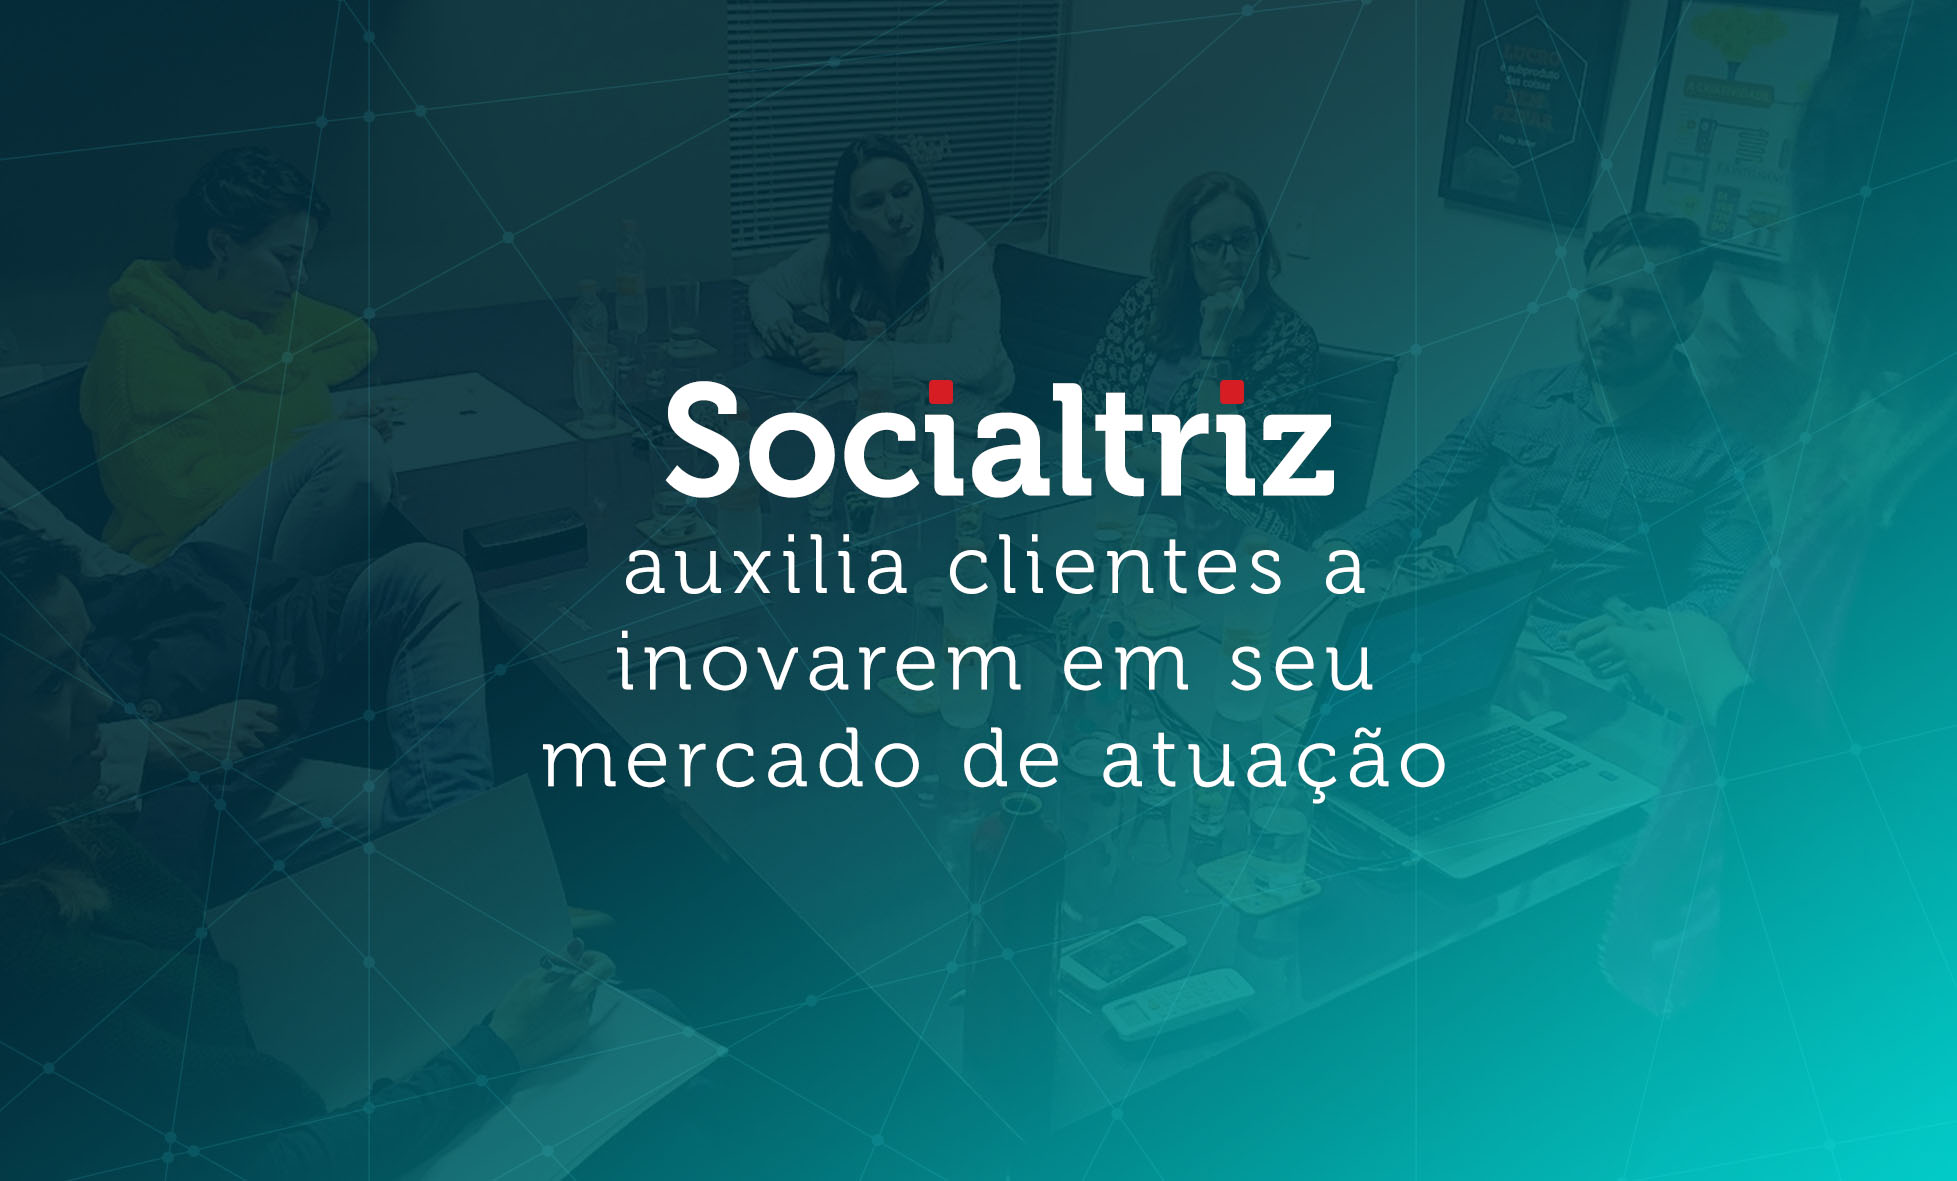 socialtriz_blog_borda_evento_branding_754x455px